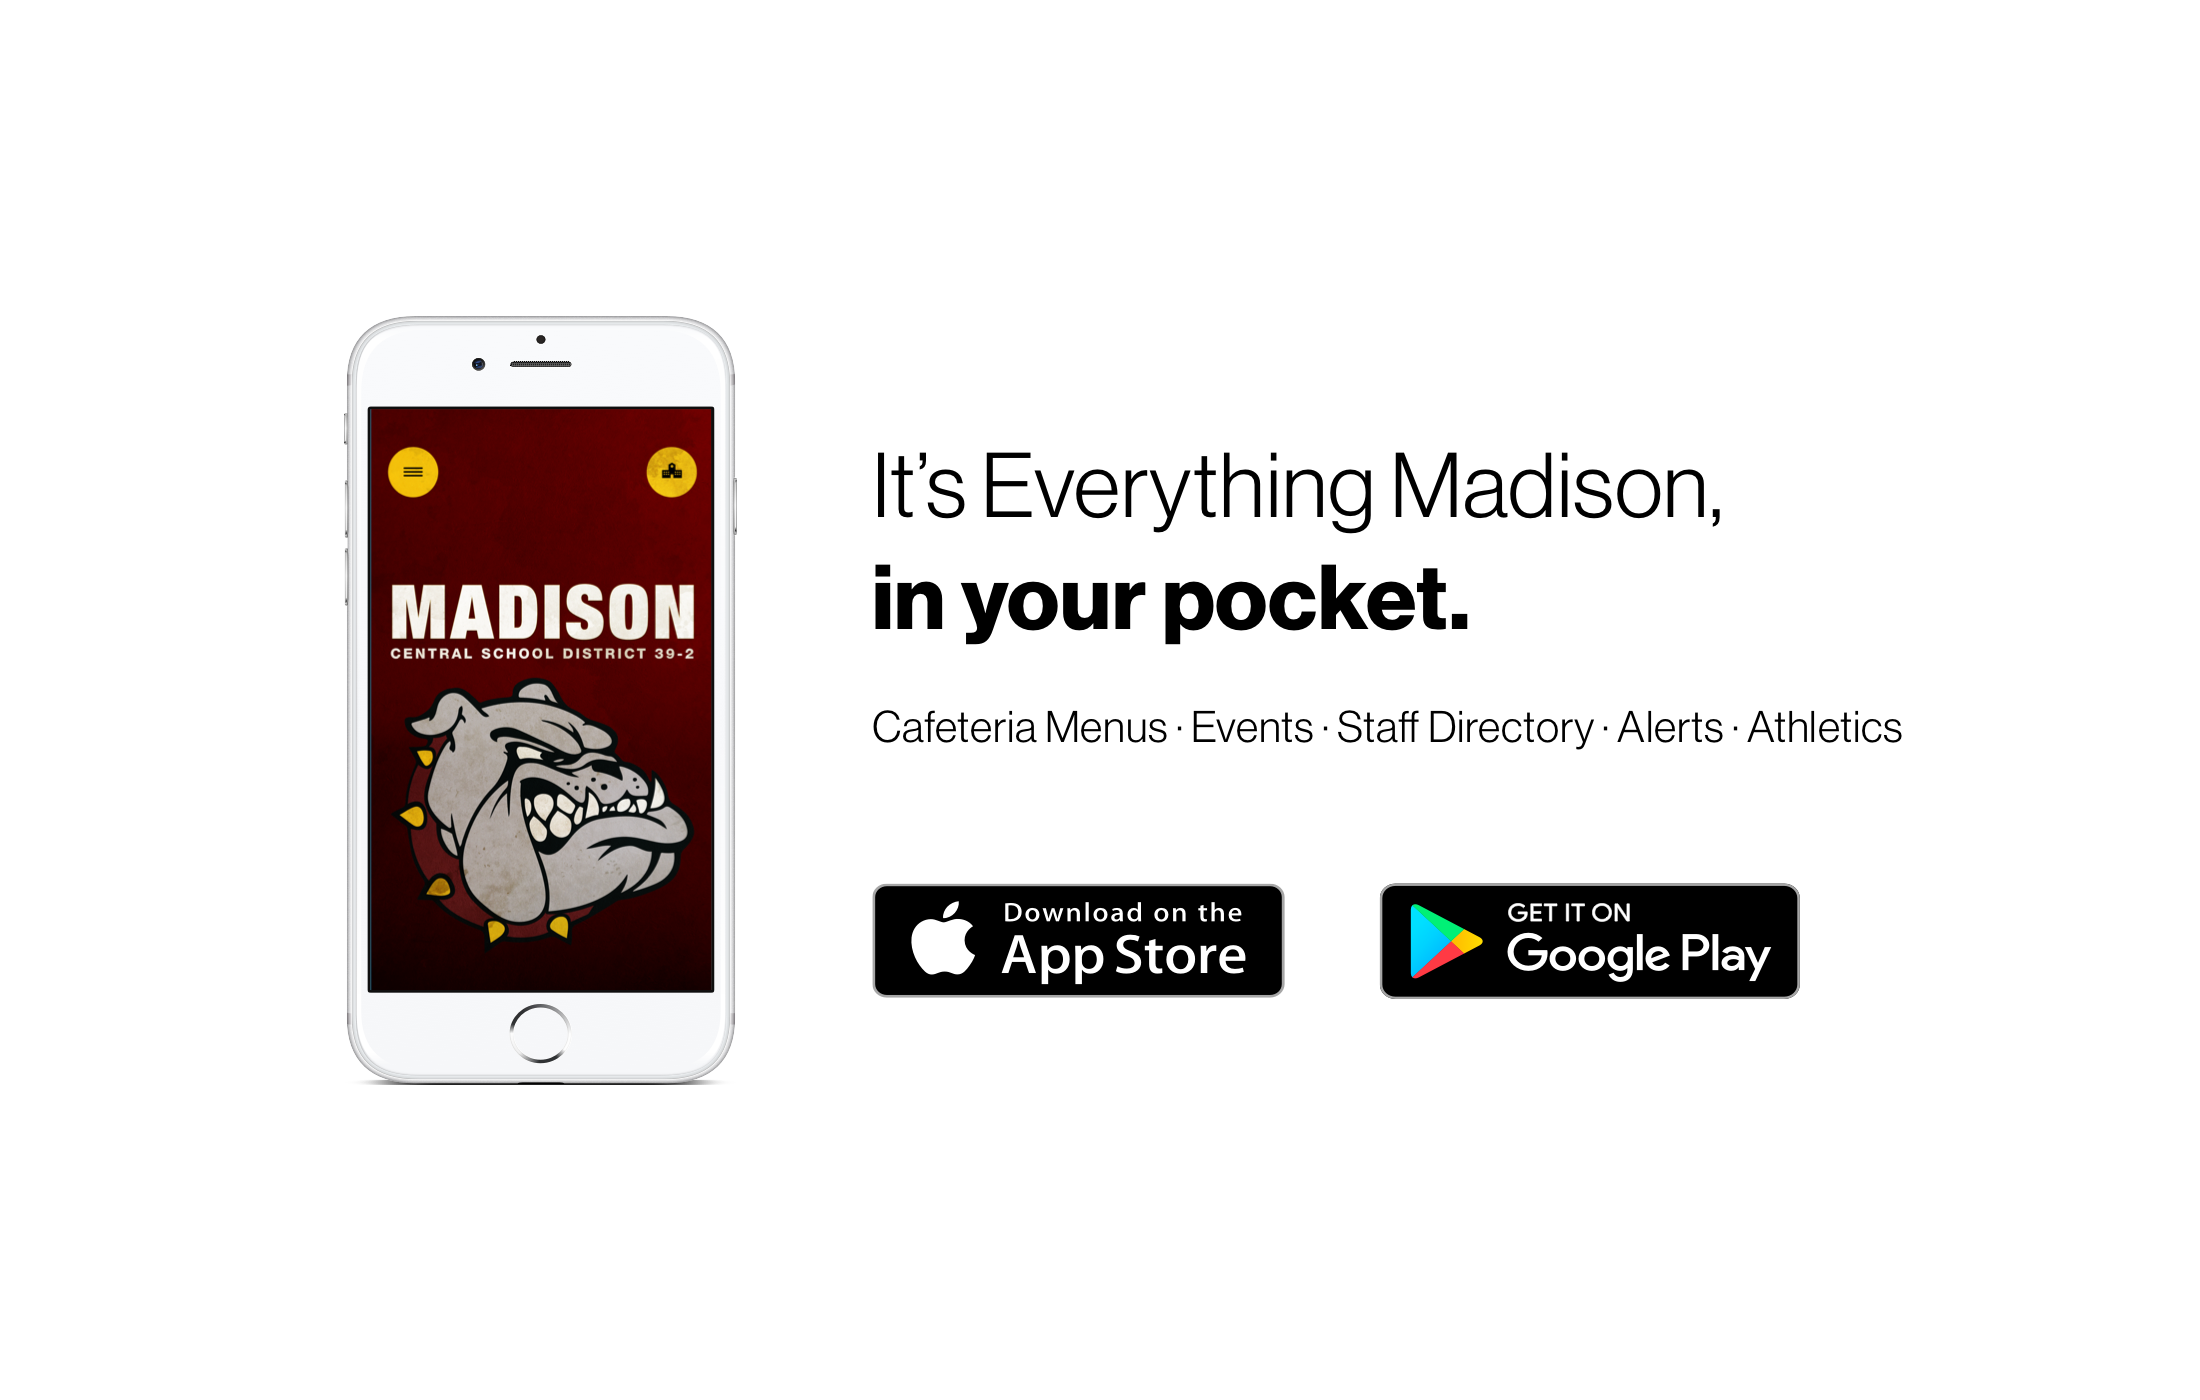 Madison App Announcement